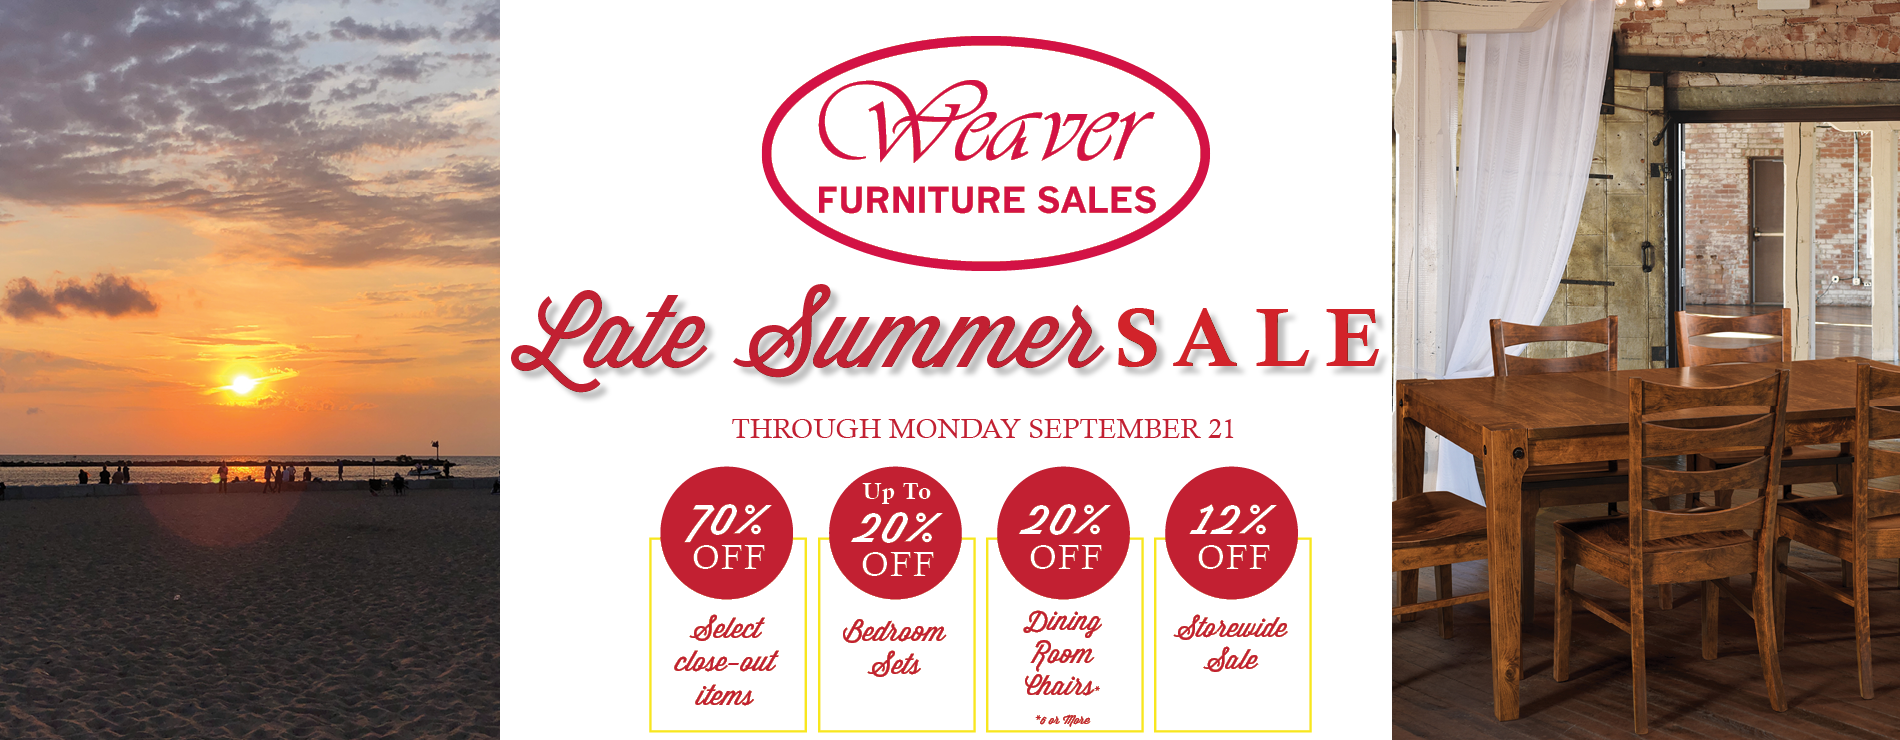 Weaver Furniture Sales Late Summer Sale